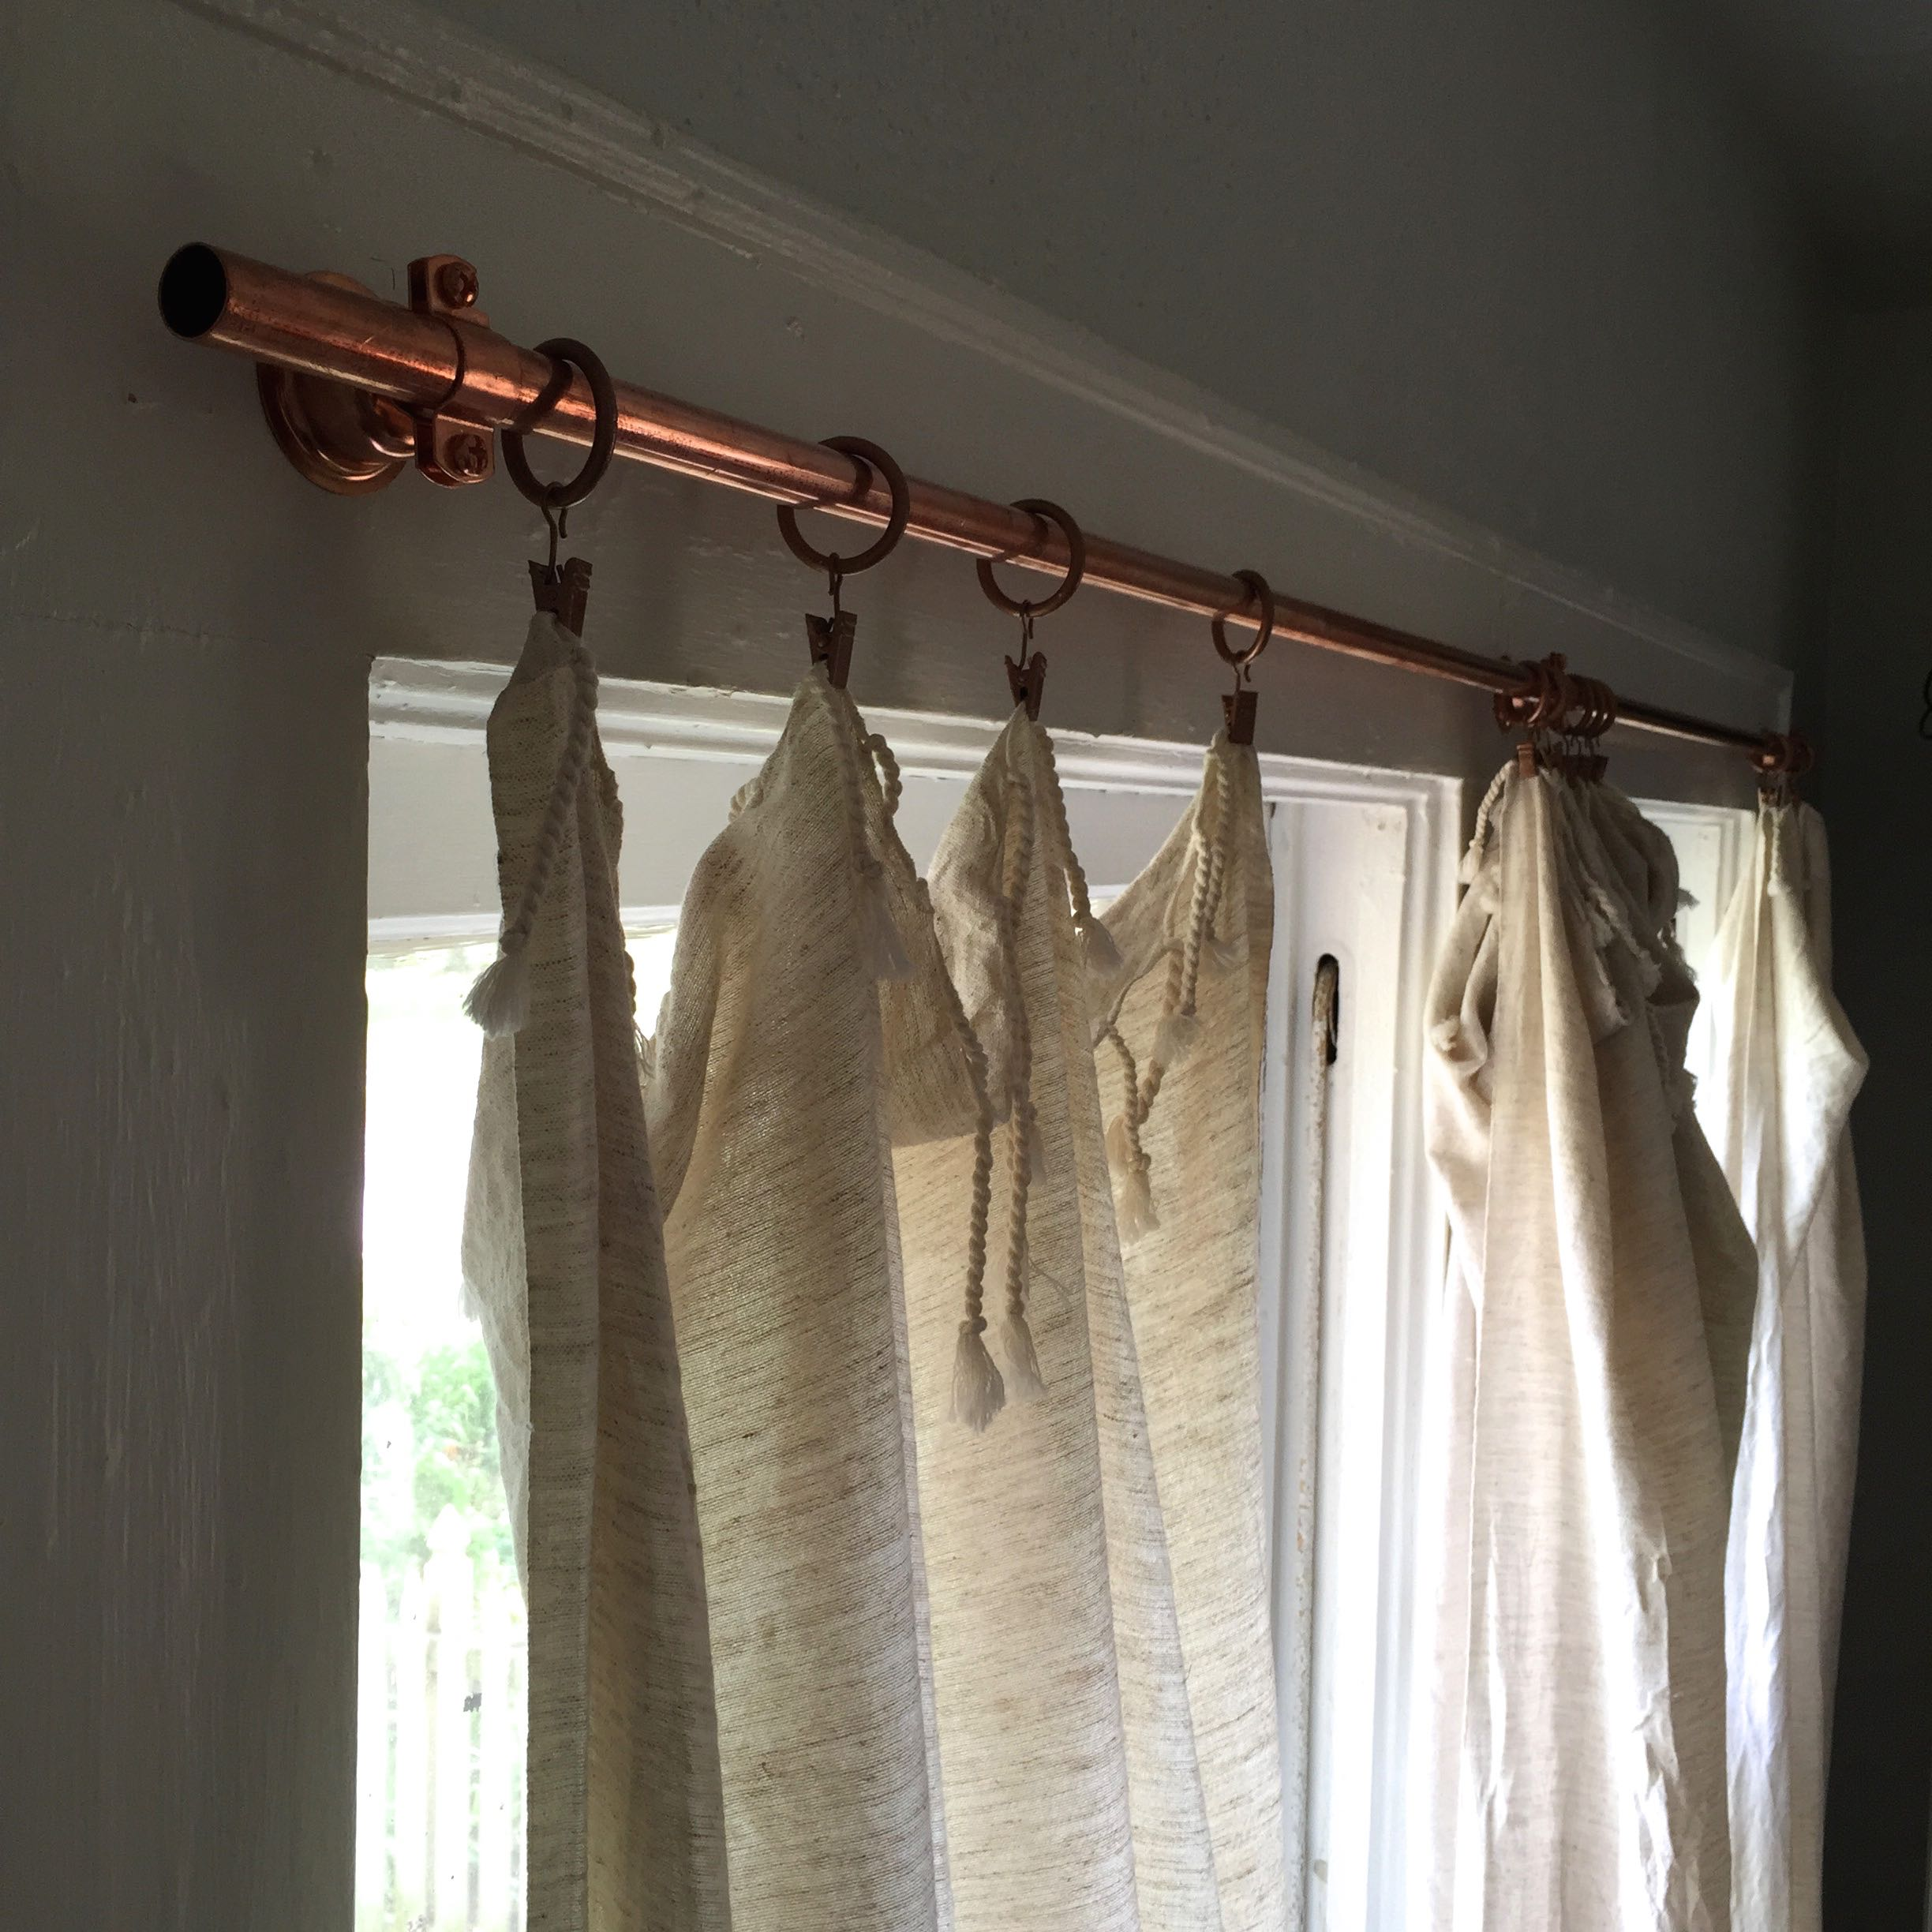 Handmade Copper Curtain Rods DIY Project